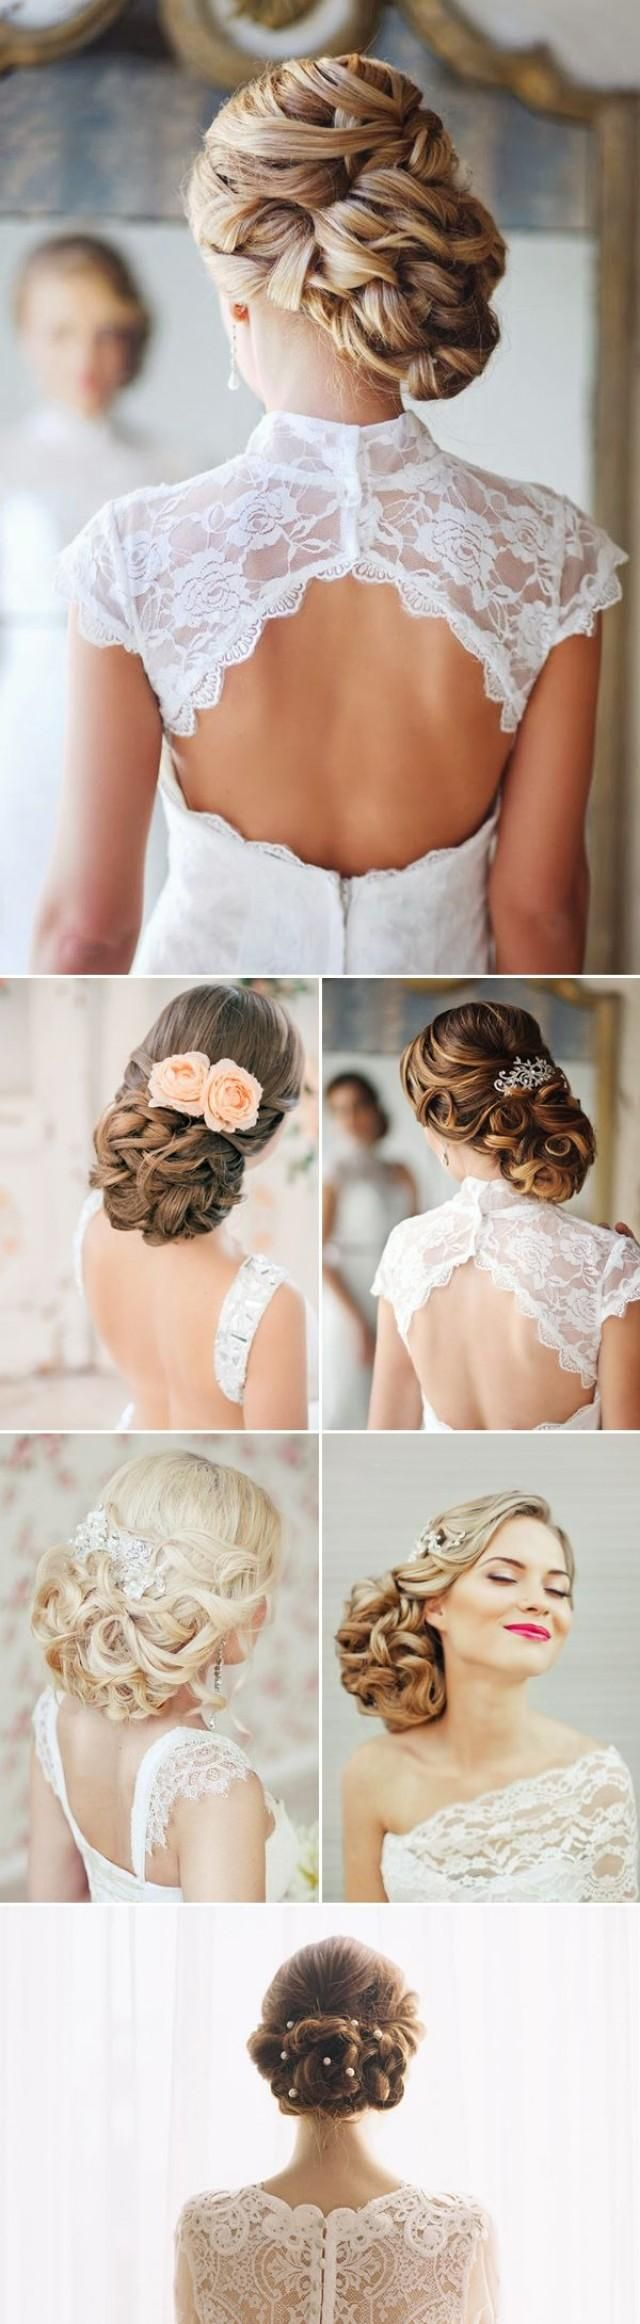 Weddbook is a content discovery engine mostly specialized on wedding concept. You can collect images, videos or articles you discovered  organize them, add your own ideas to your collections and share with other people - updo01-twisted-braids